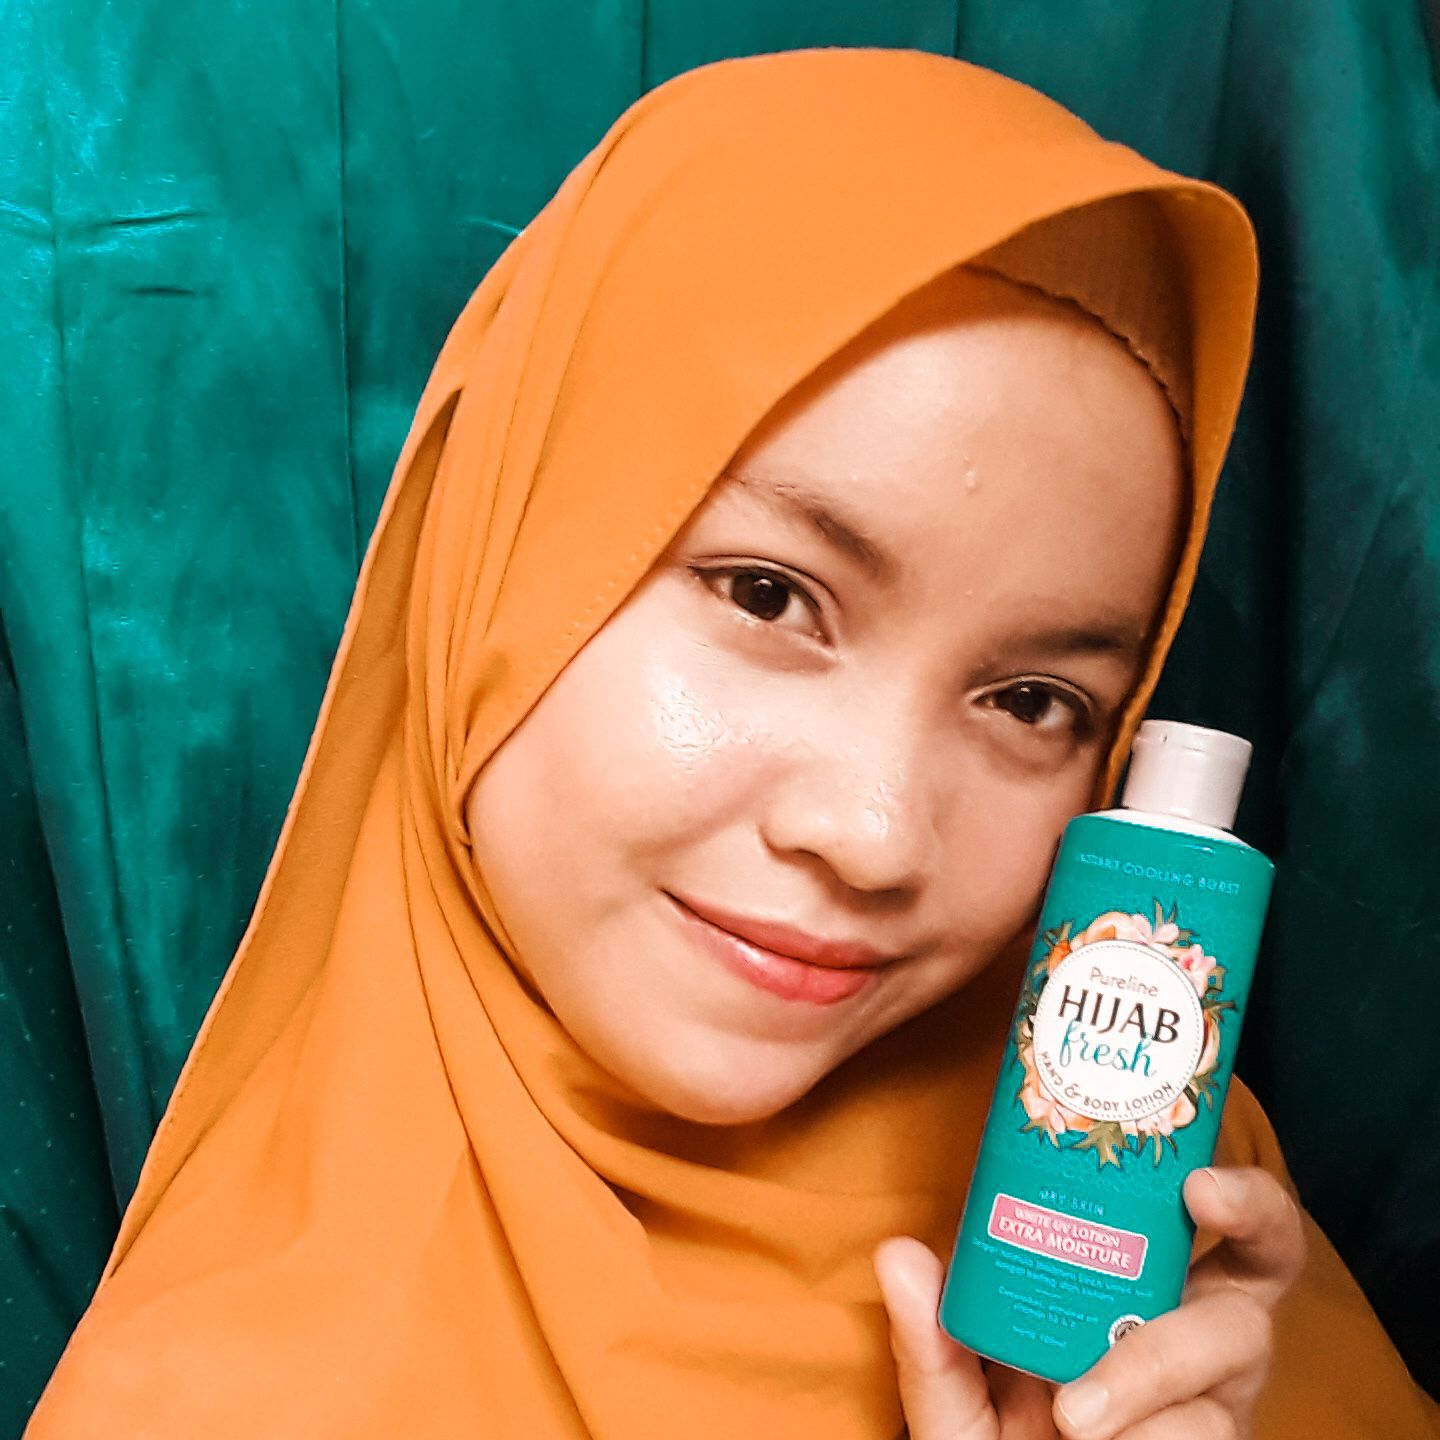 gambar review ke-3 untuk Pureline Hijab Fresh Hand & Body Lotion Healthy & Bright